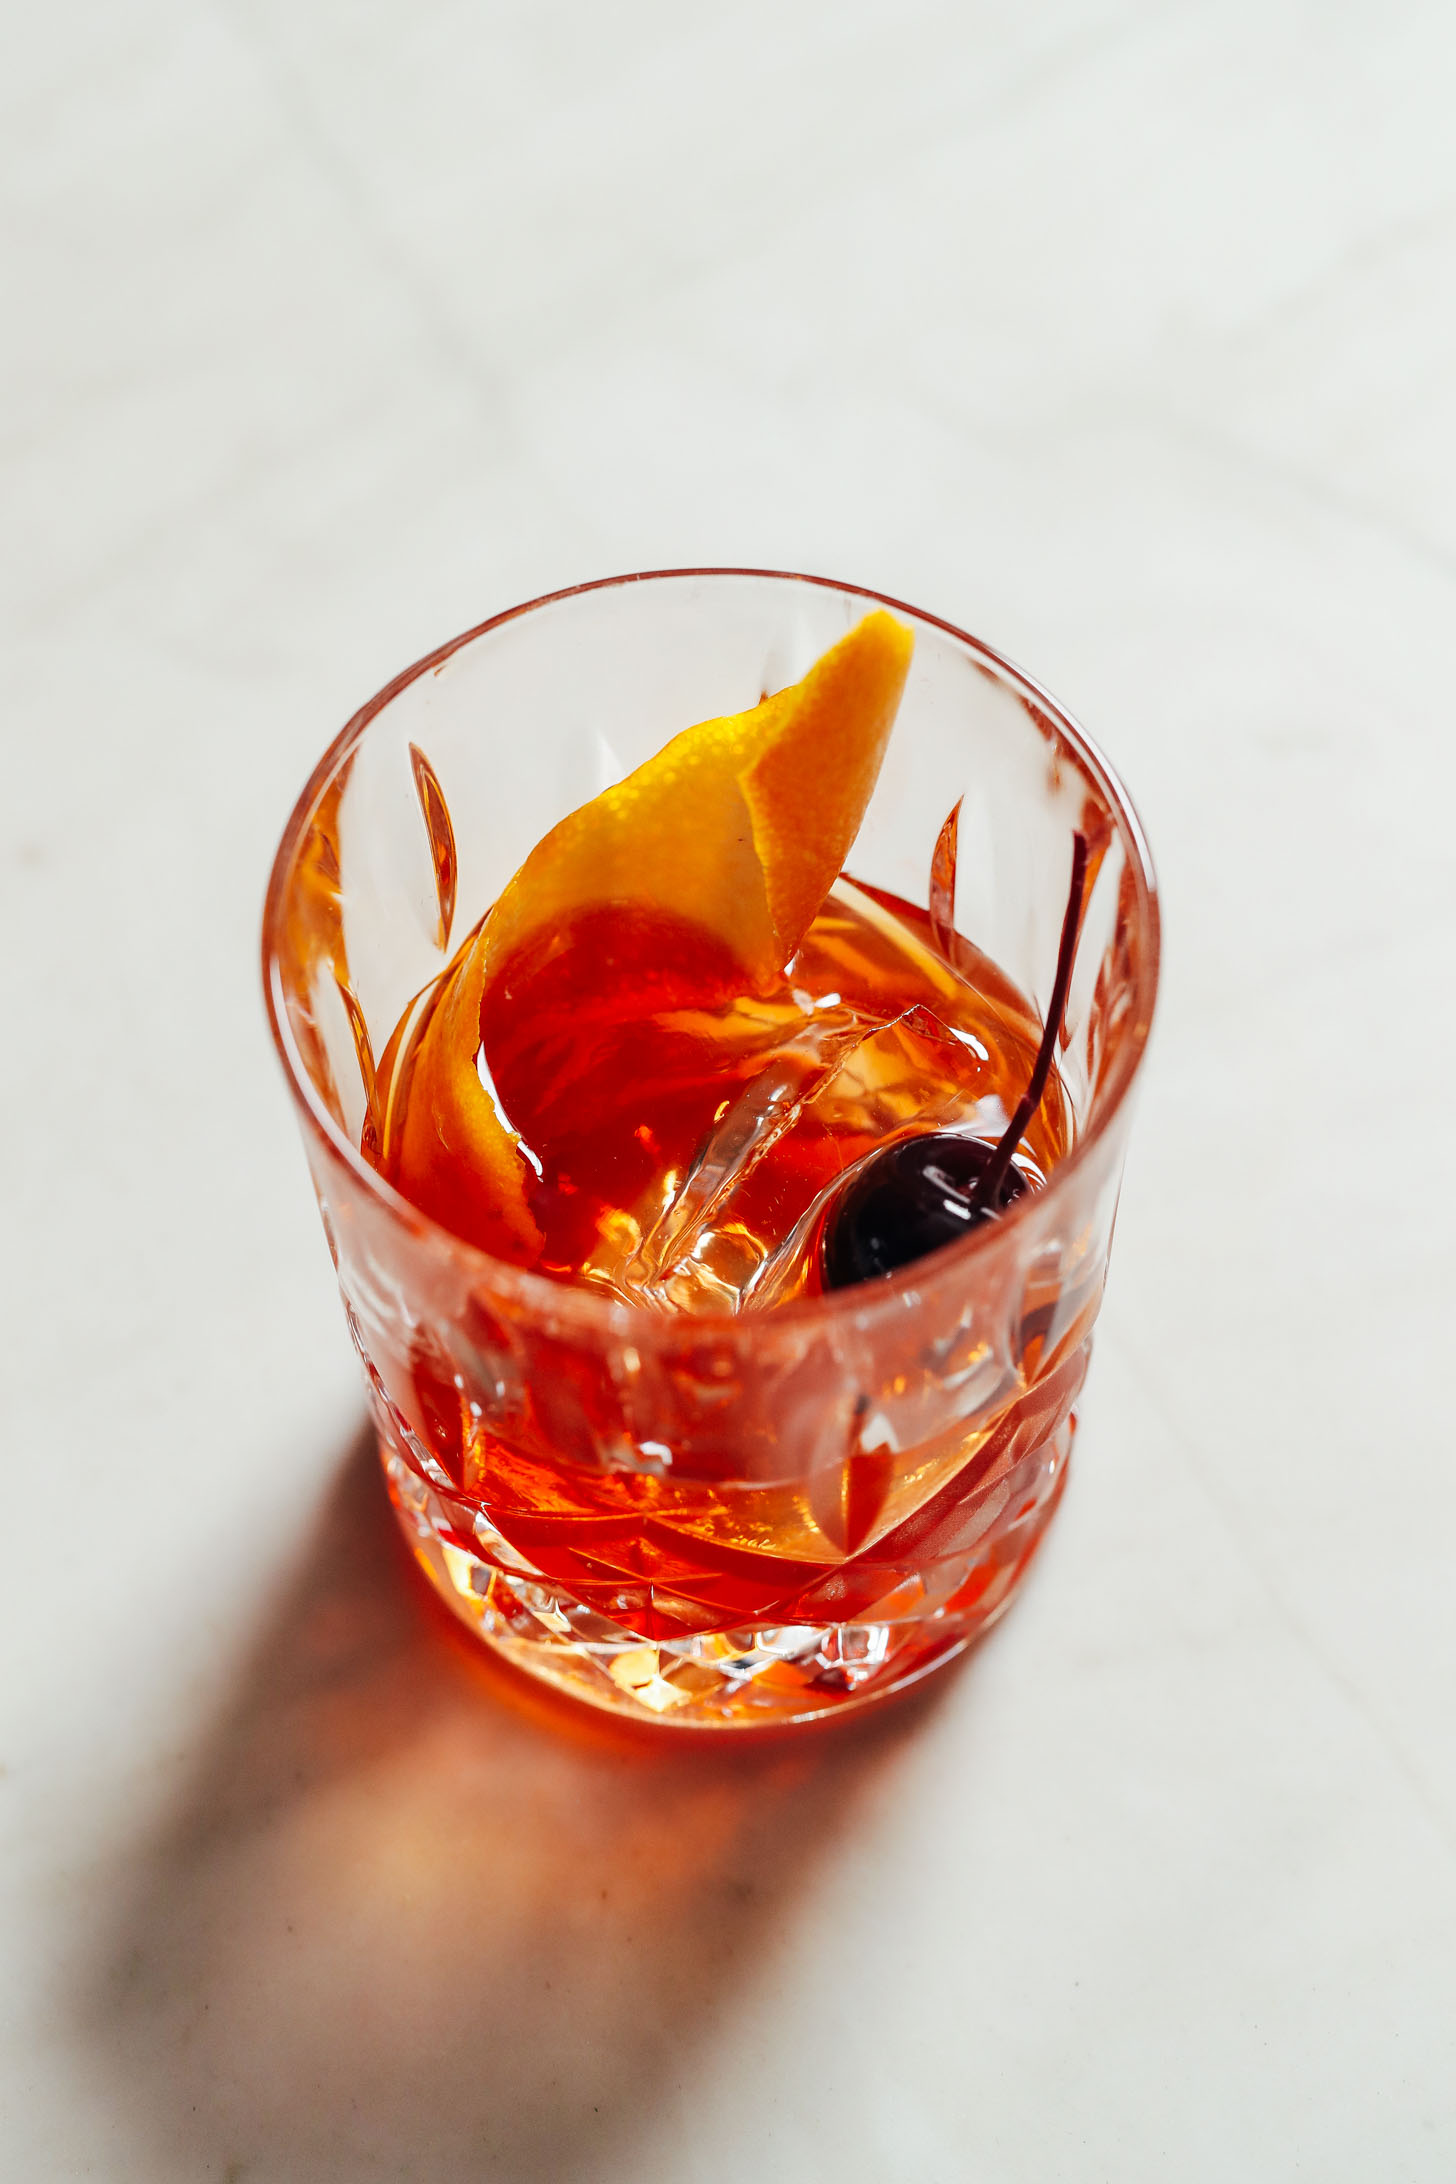 Orange peel and cocktail cherry in a Classic Old Fashioned